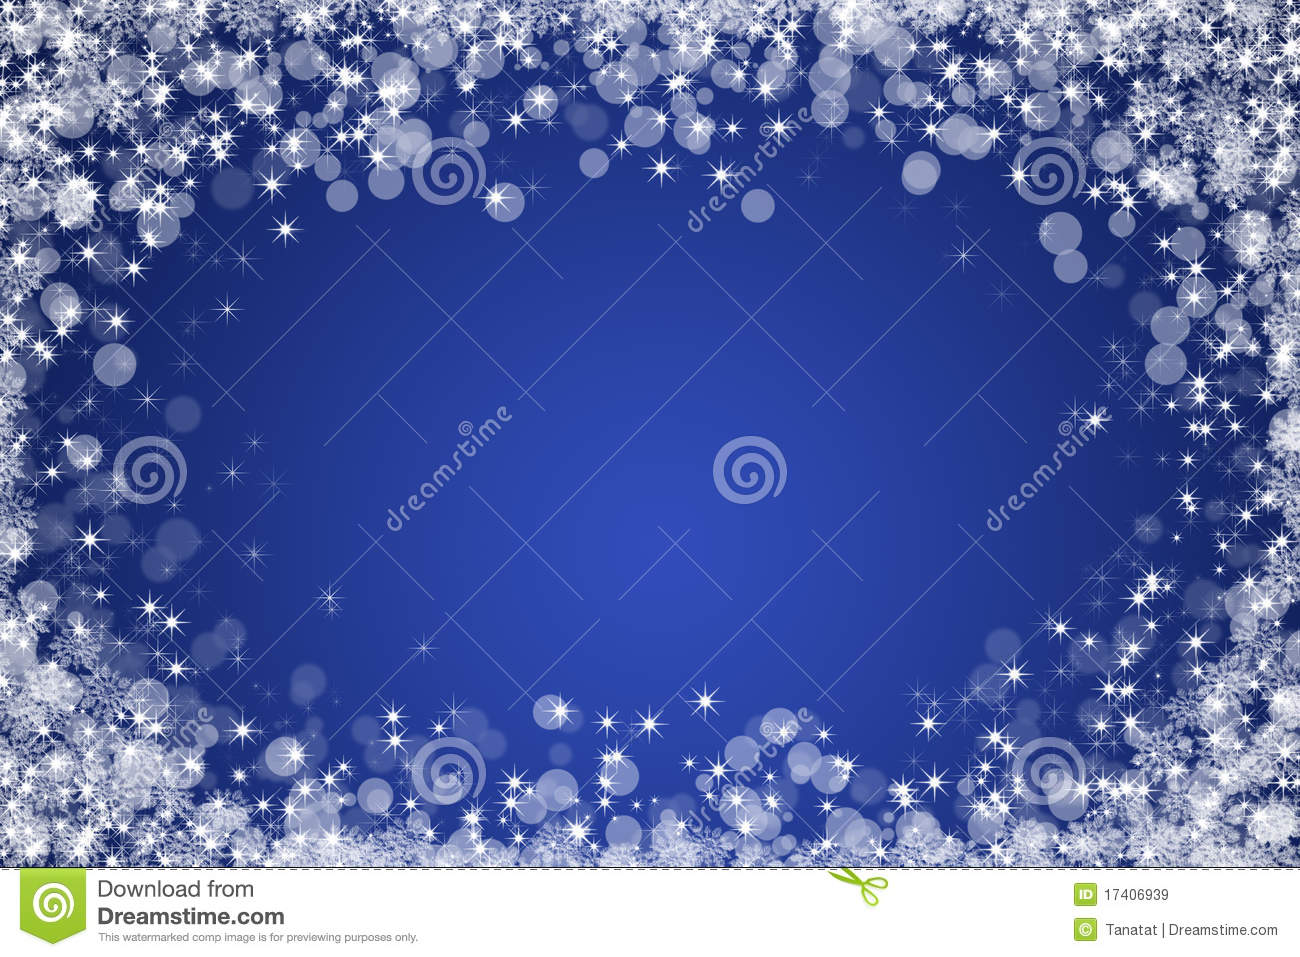 abstract winter background free - photo #34